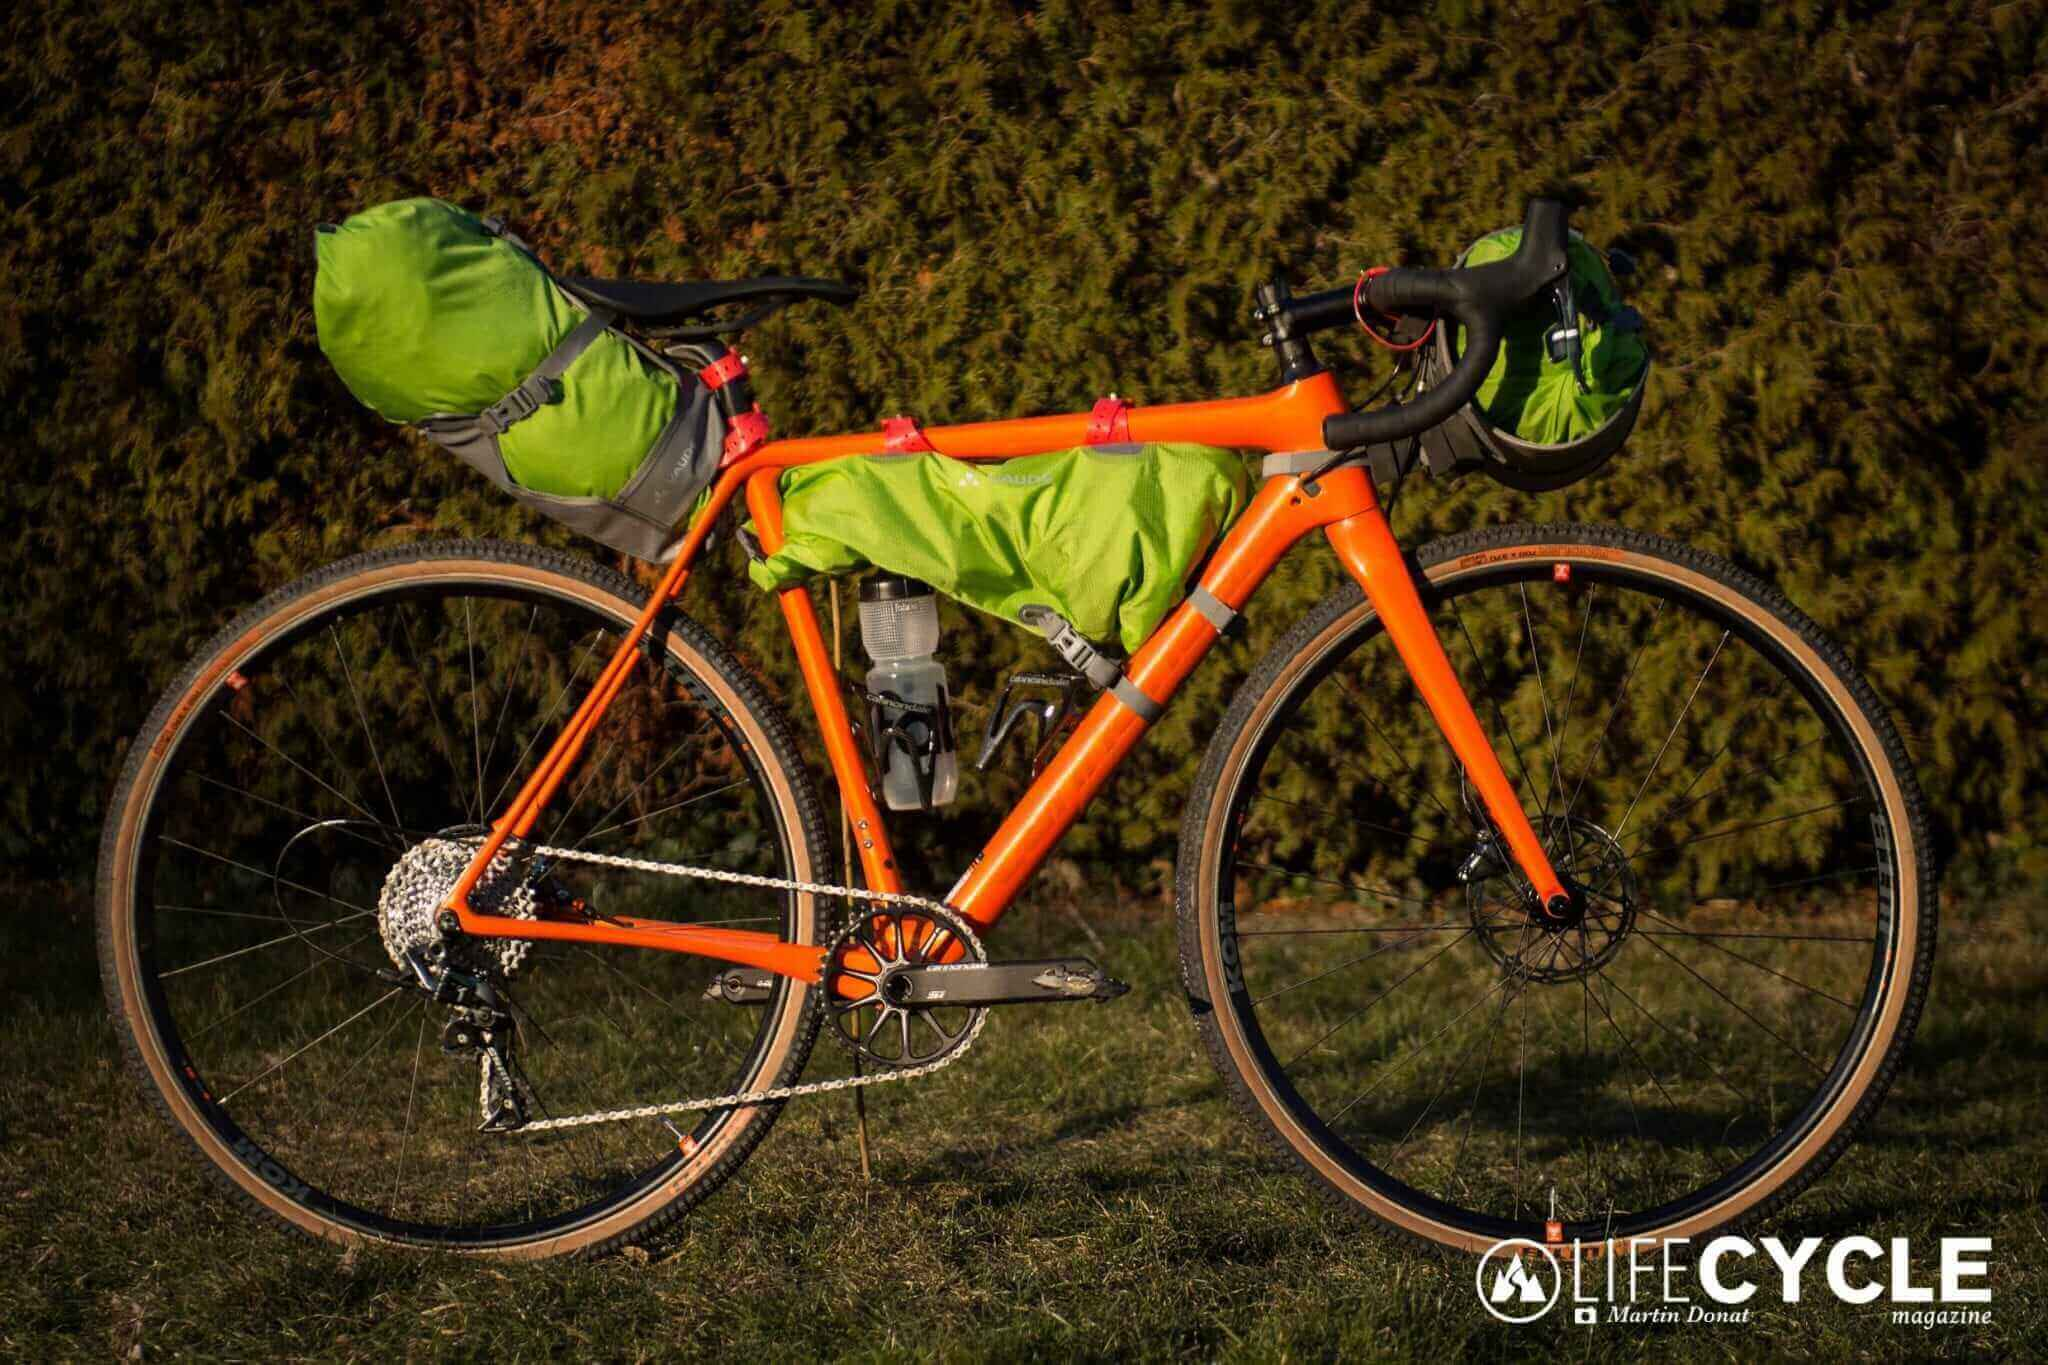 Vaude Bike Packing Test